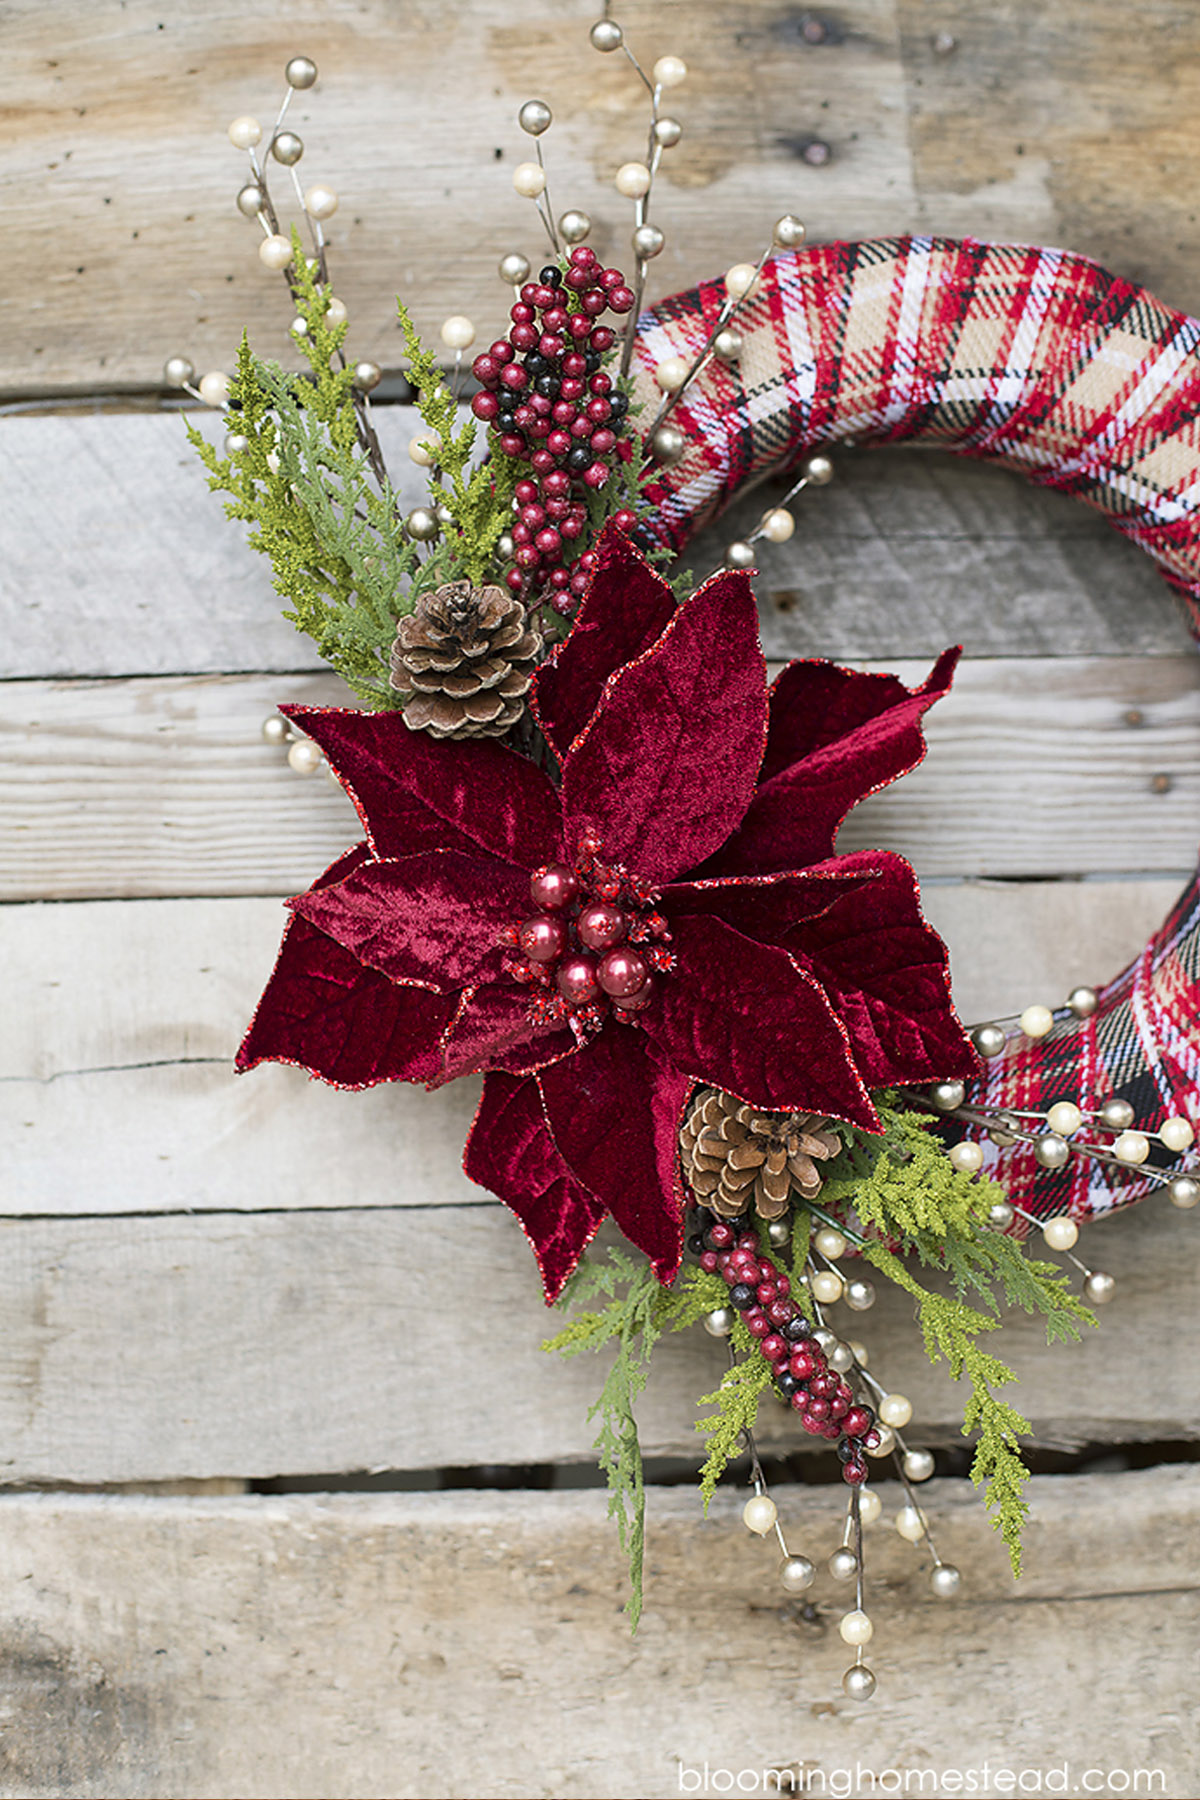 Diy Wreath Supplies 40 43 Diy Christmas Wreath Ideas How To Make A Homemade